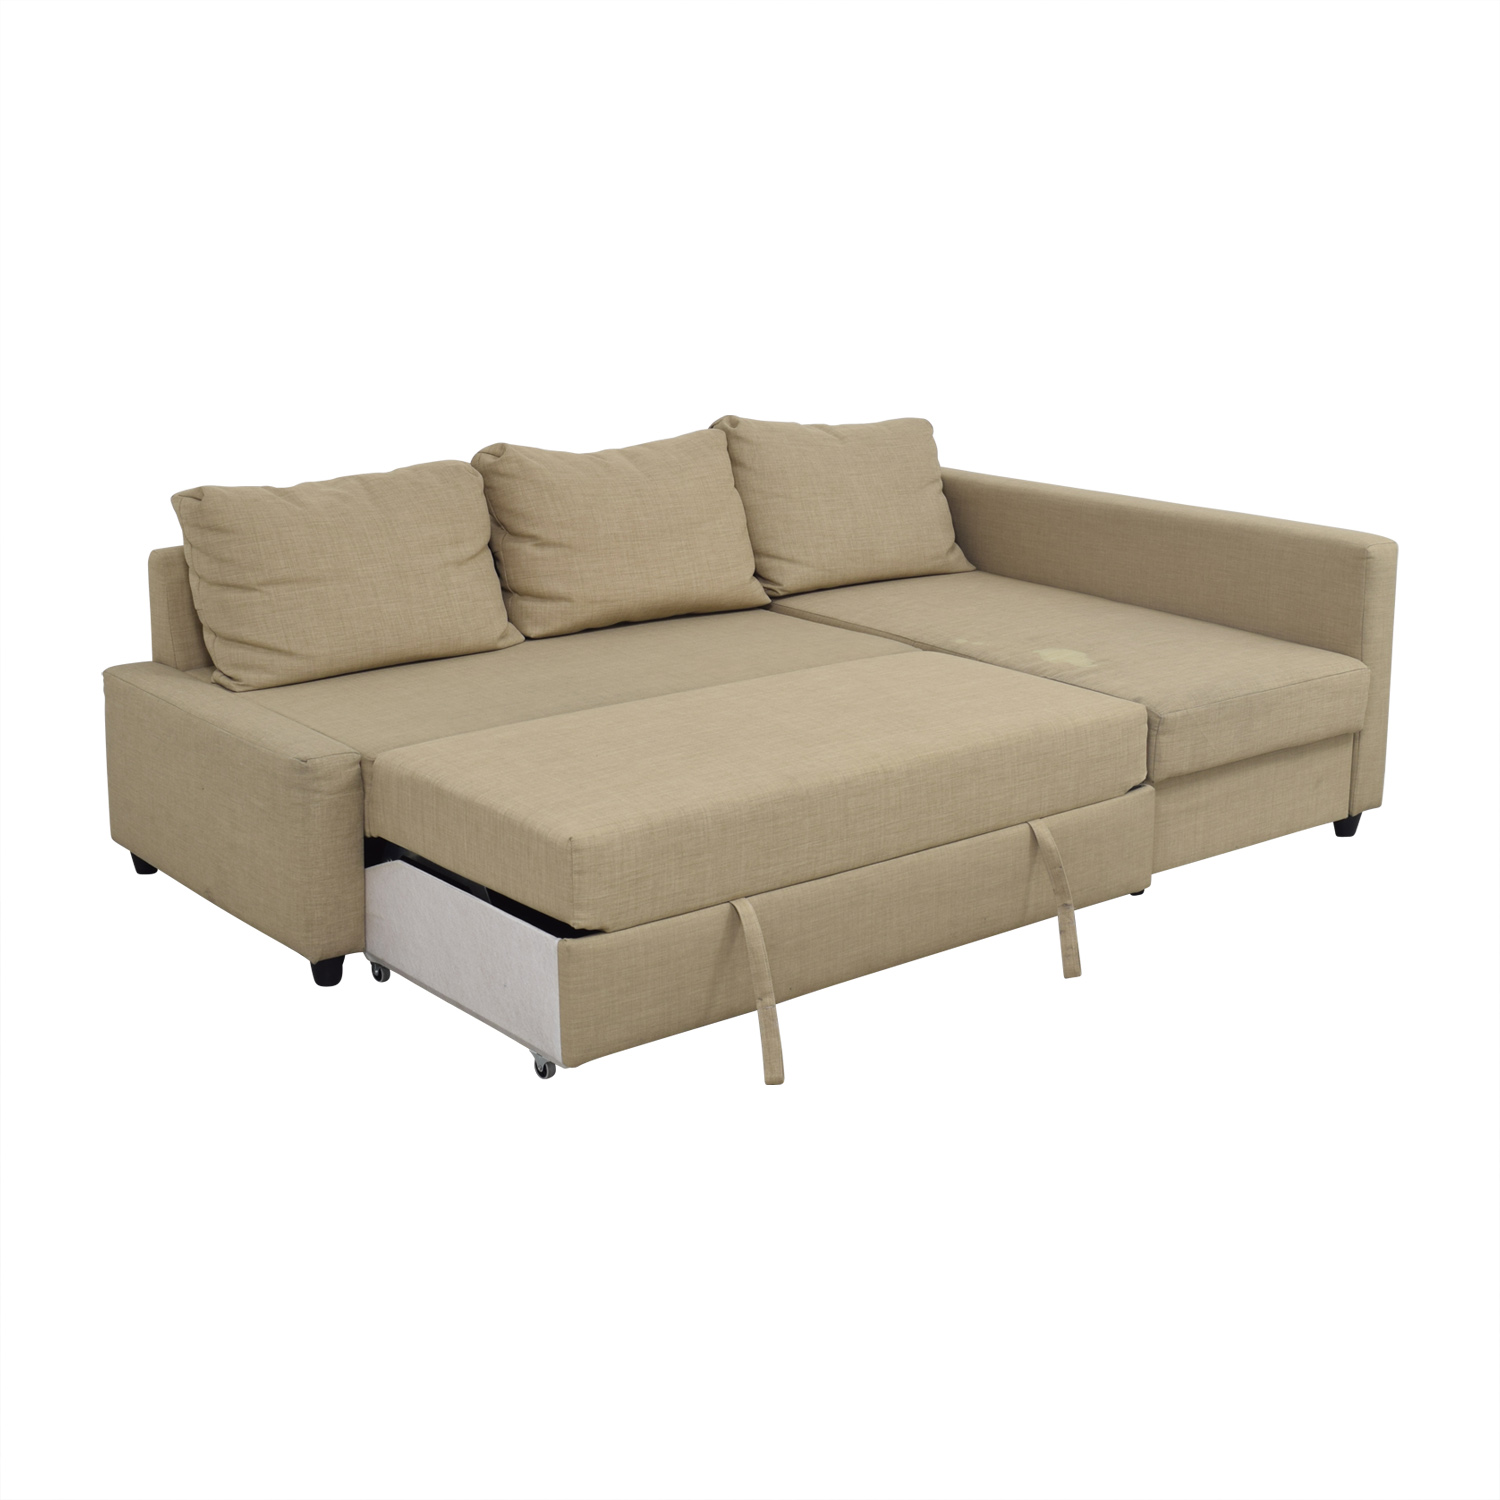 elegant with queen breathtaking sleep sofa sleeper size full sectional sectionals bed persoperperso